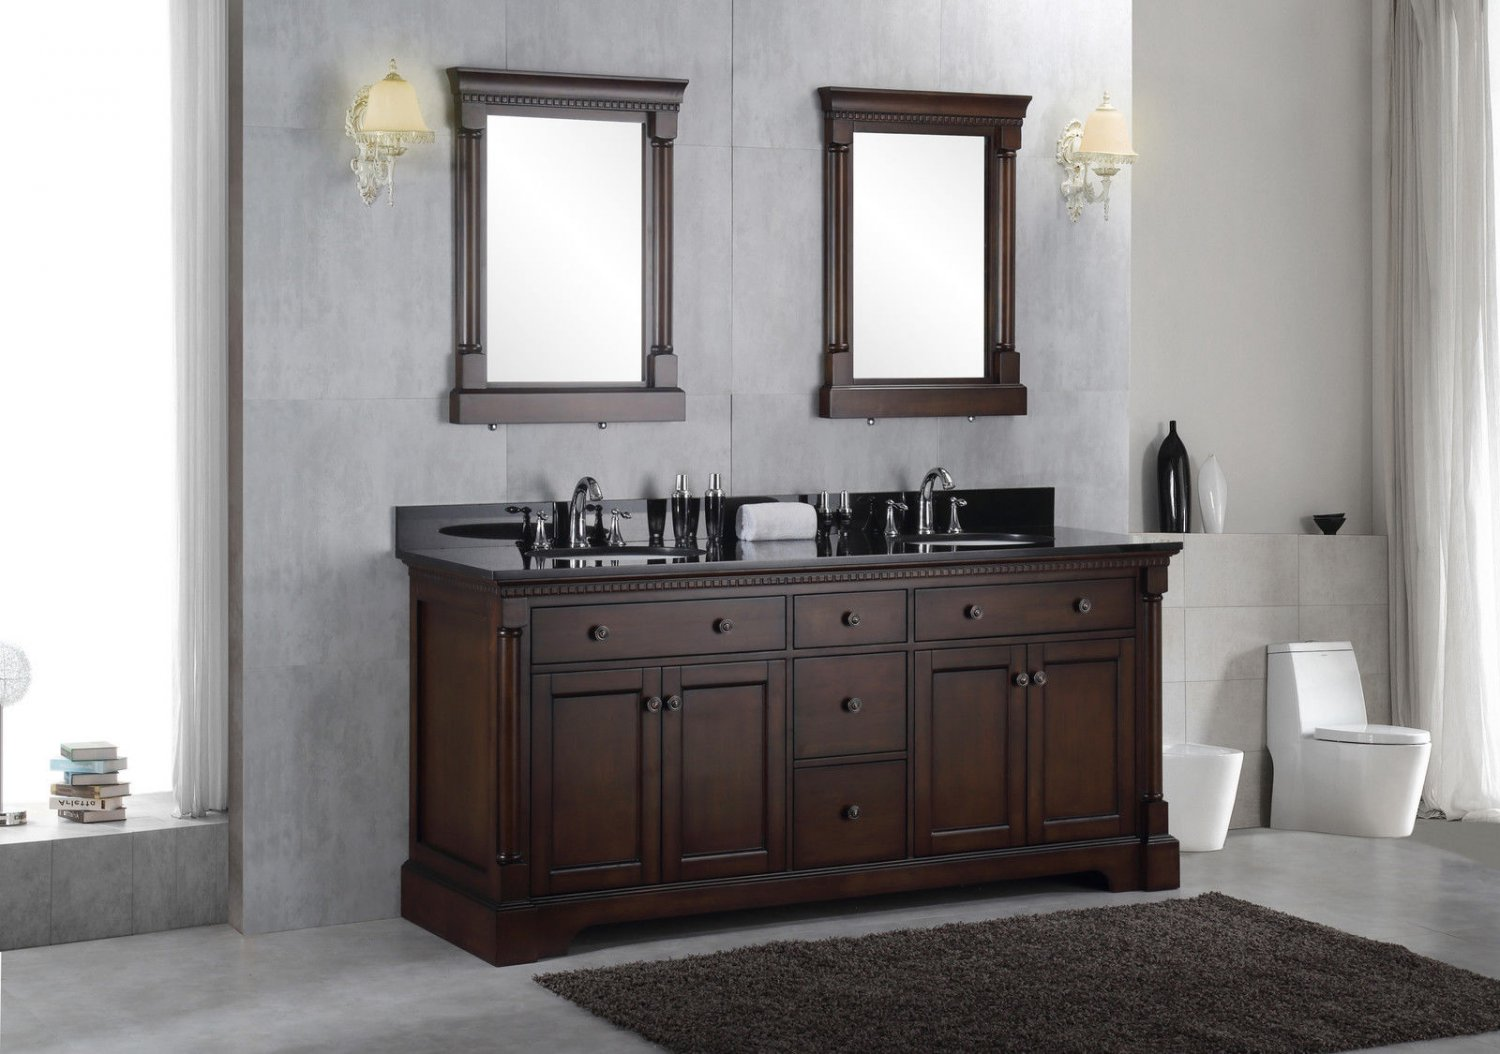 72 solid wood double bathroom vanity sink cabinet w black granite top for Solid wood double sink bathroom vanity